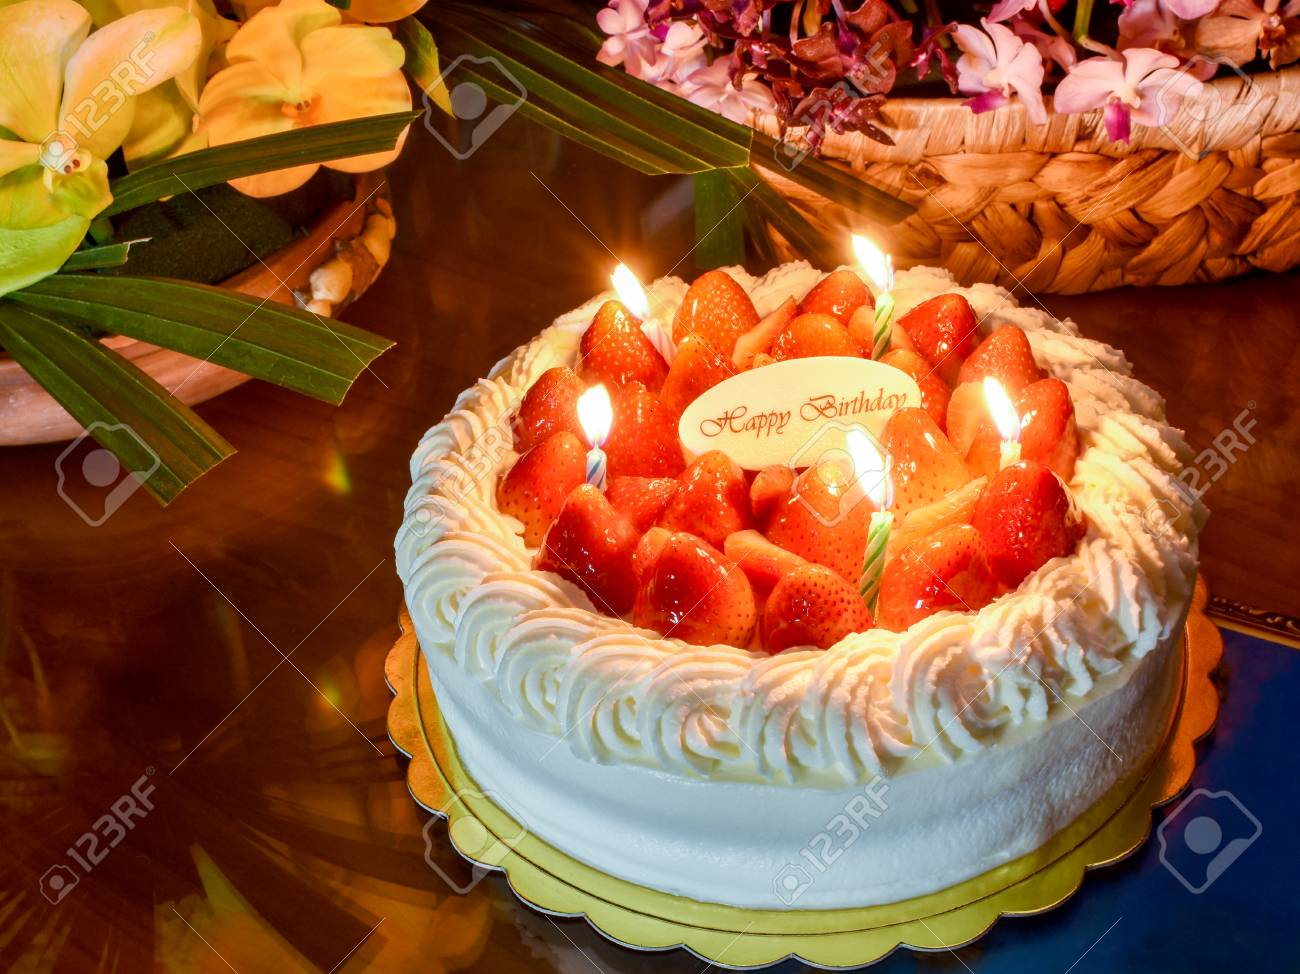 Swell Candles Light On Strawberry Birthday Cake So Delightful Stock Funny Birthday Cards Online Barepcheapnameinfo